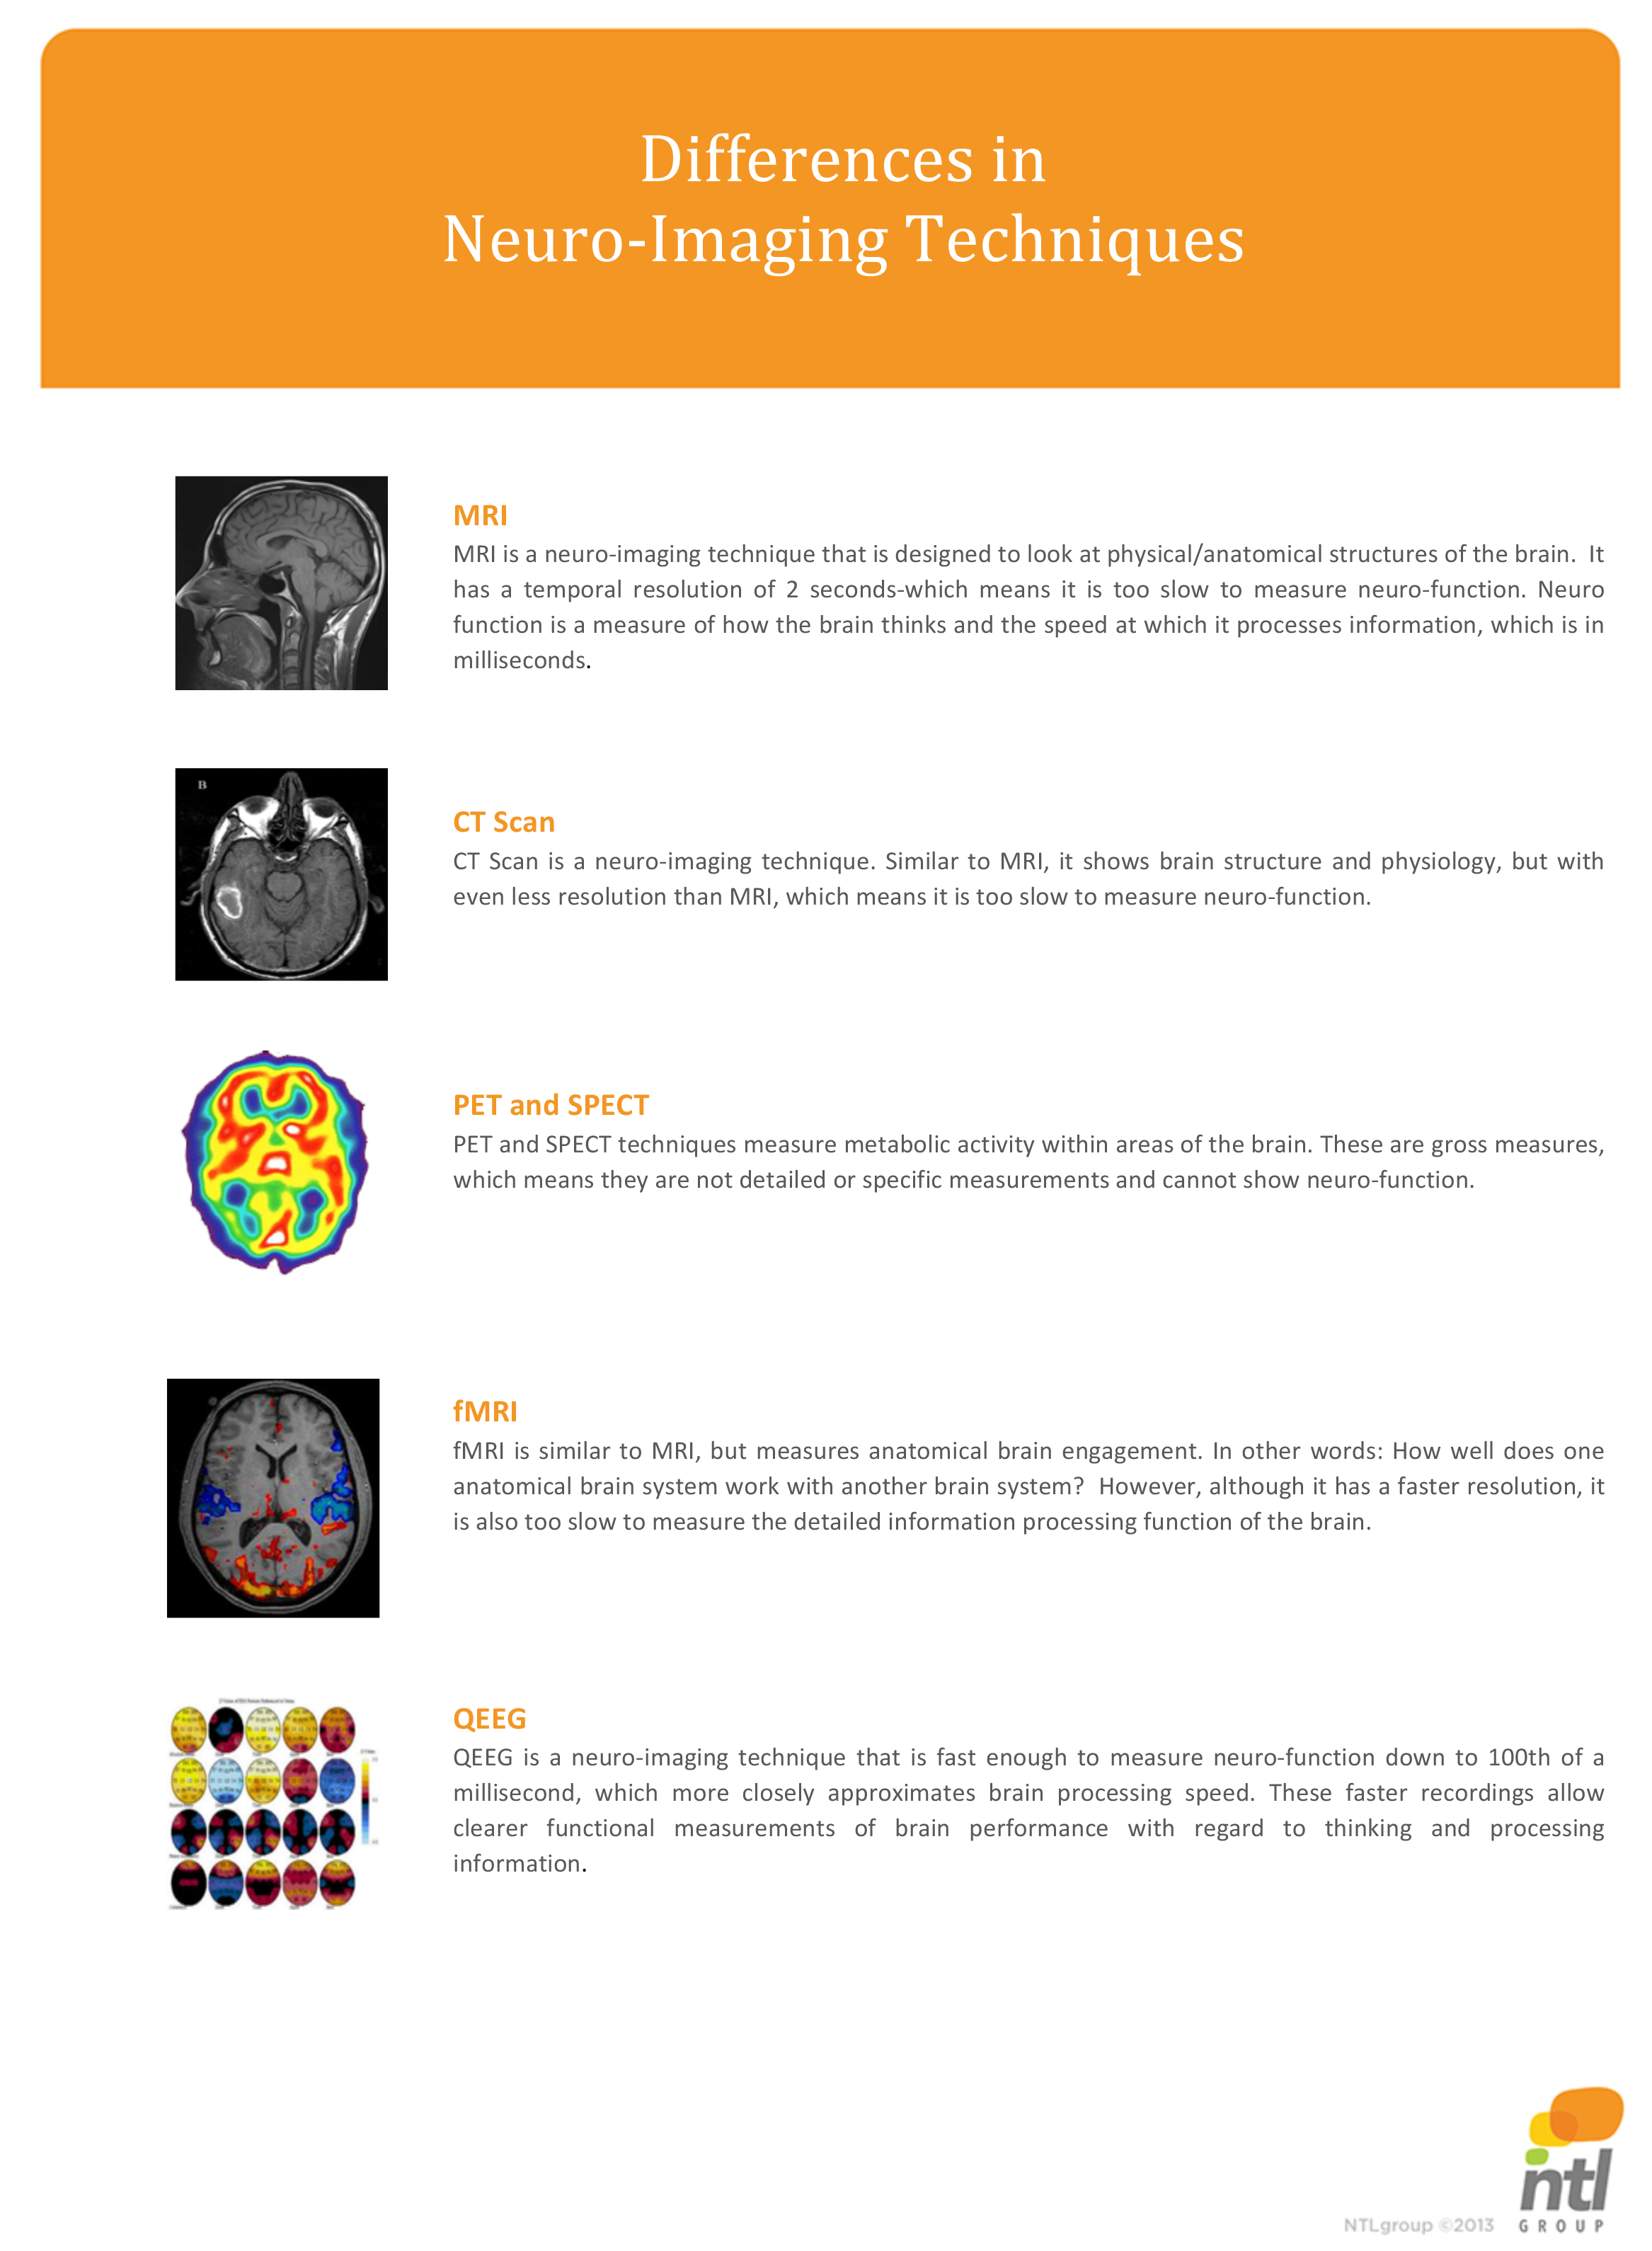 Differences in Neuro-Imaging Technique